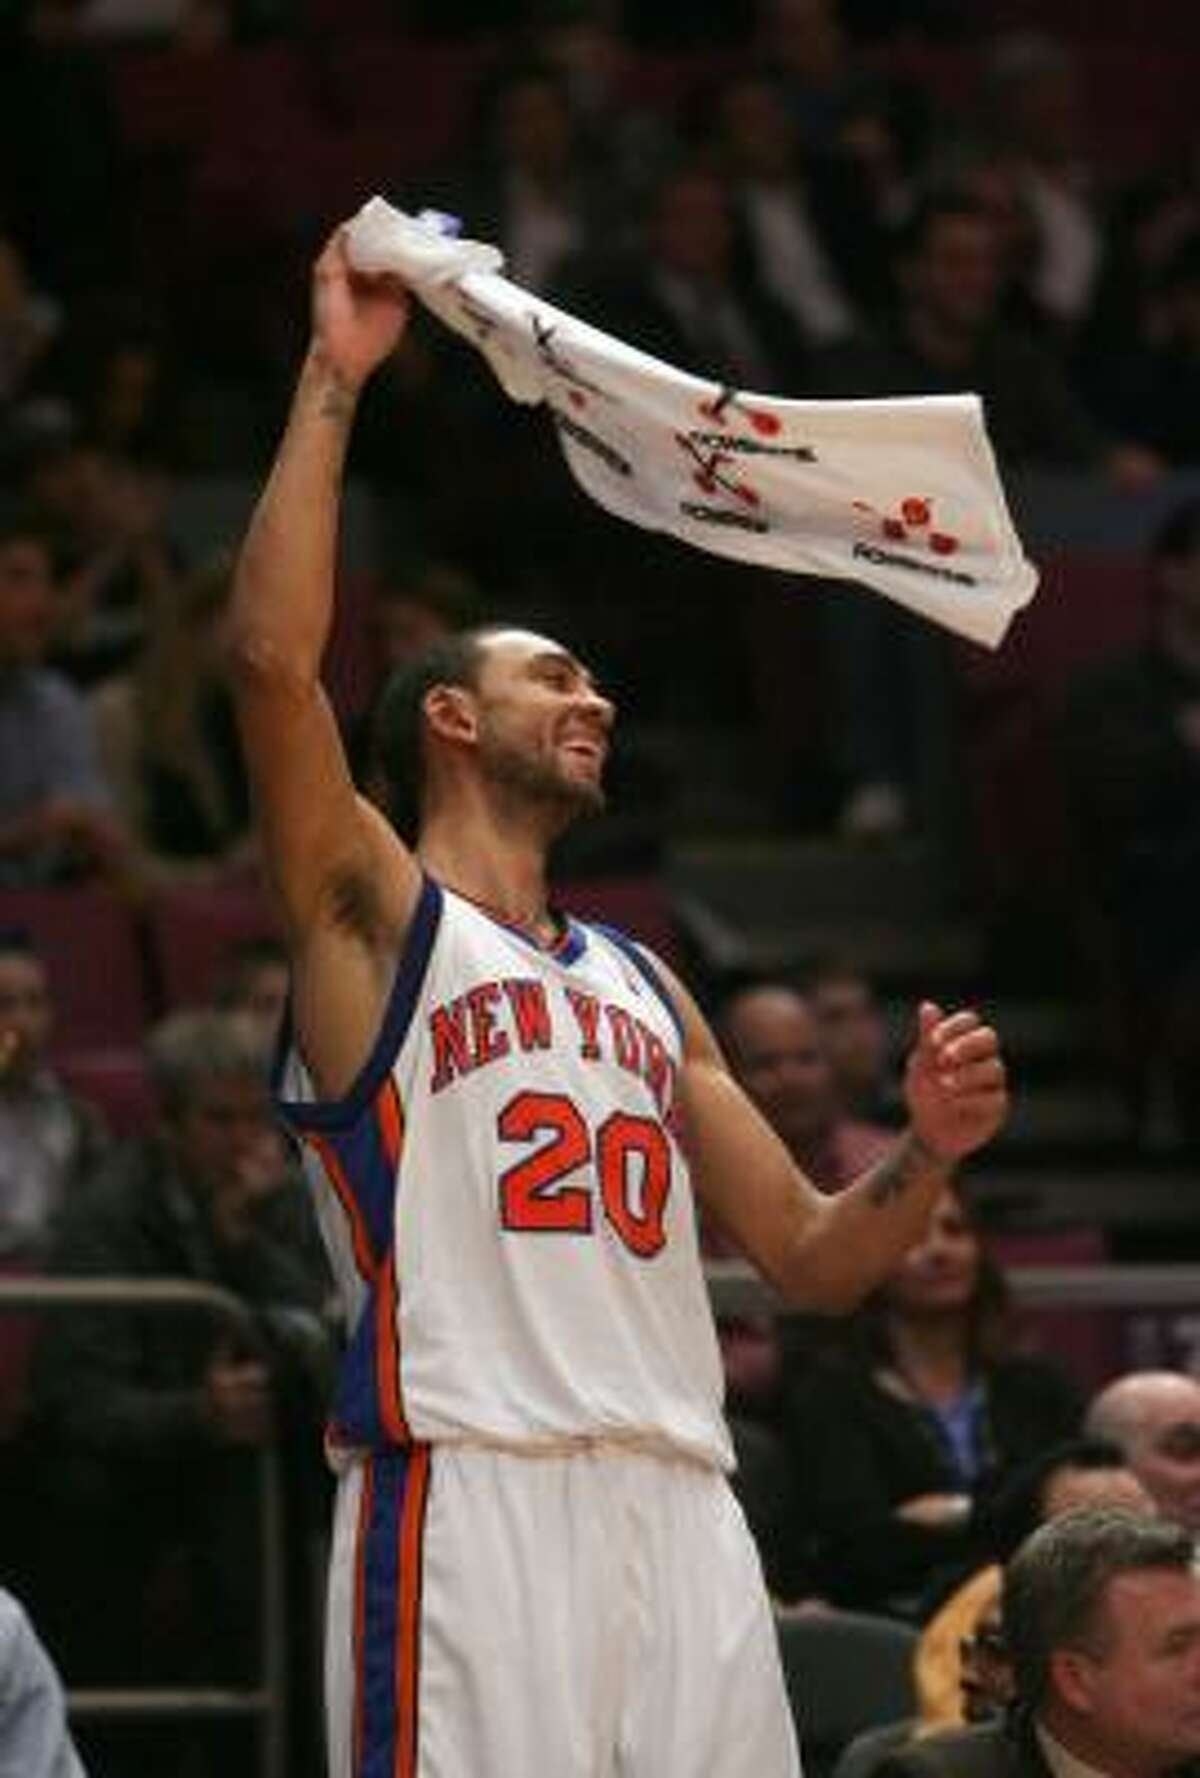 Jared Jeffries (from New York Knicks) Position: Forward Age: 28 Height: 6-11 Weight: 240 2009-10 stats: 5.5 points per game, 4.3 rebounds Comment: Has outstanding versatility defensively and excellent length. Figures to be more of a fill-in as a defensive specialist, especially against post-up small forwards, but does not figure to have a spot in the rotation.